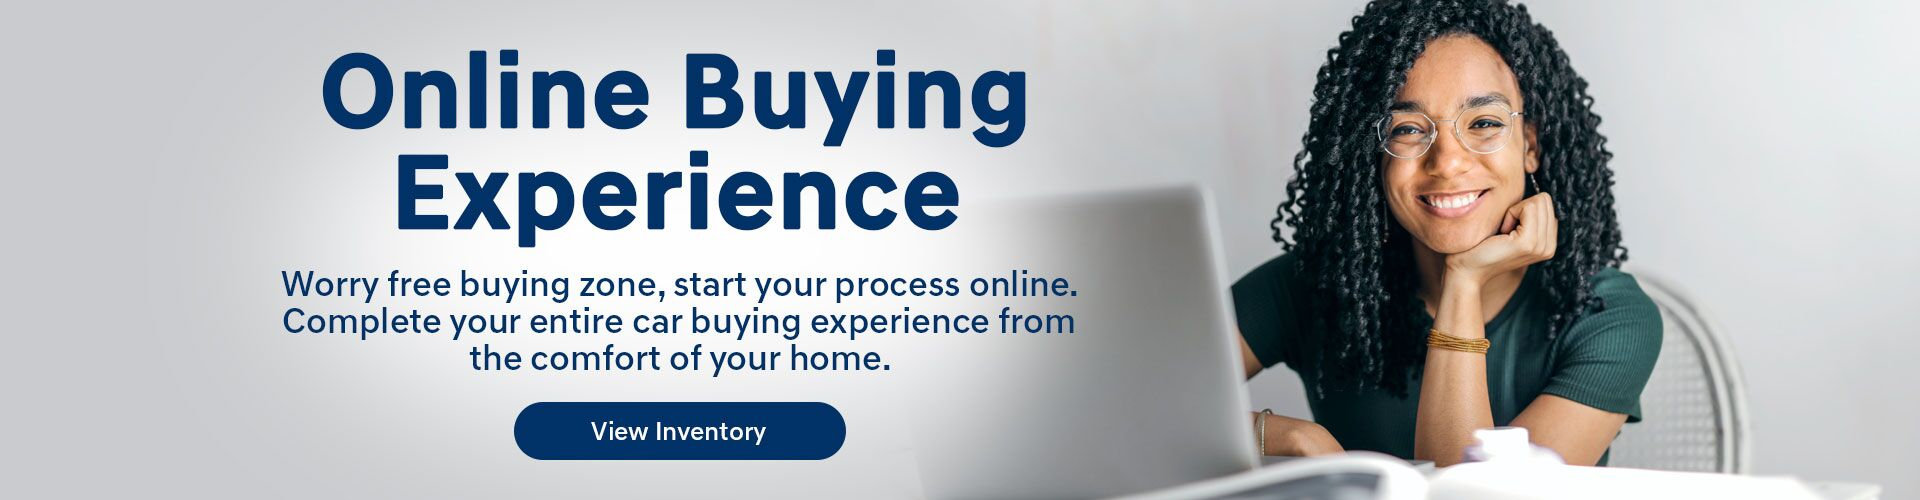 Online Buying Experience